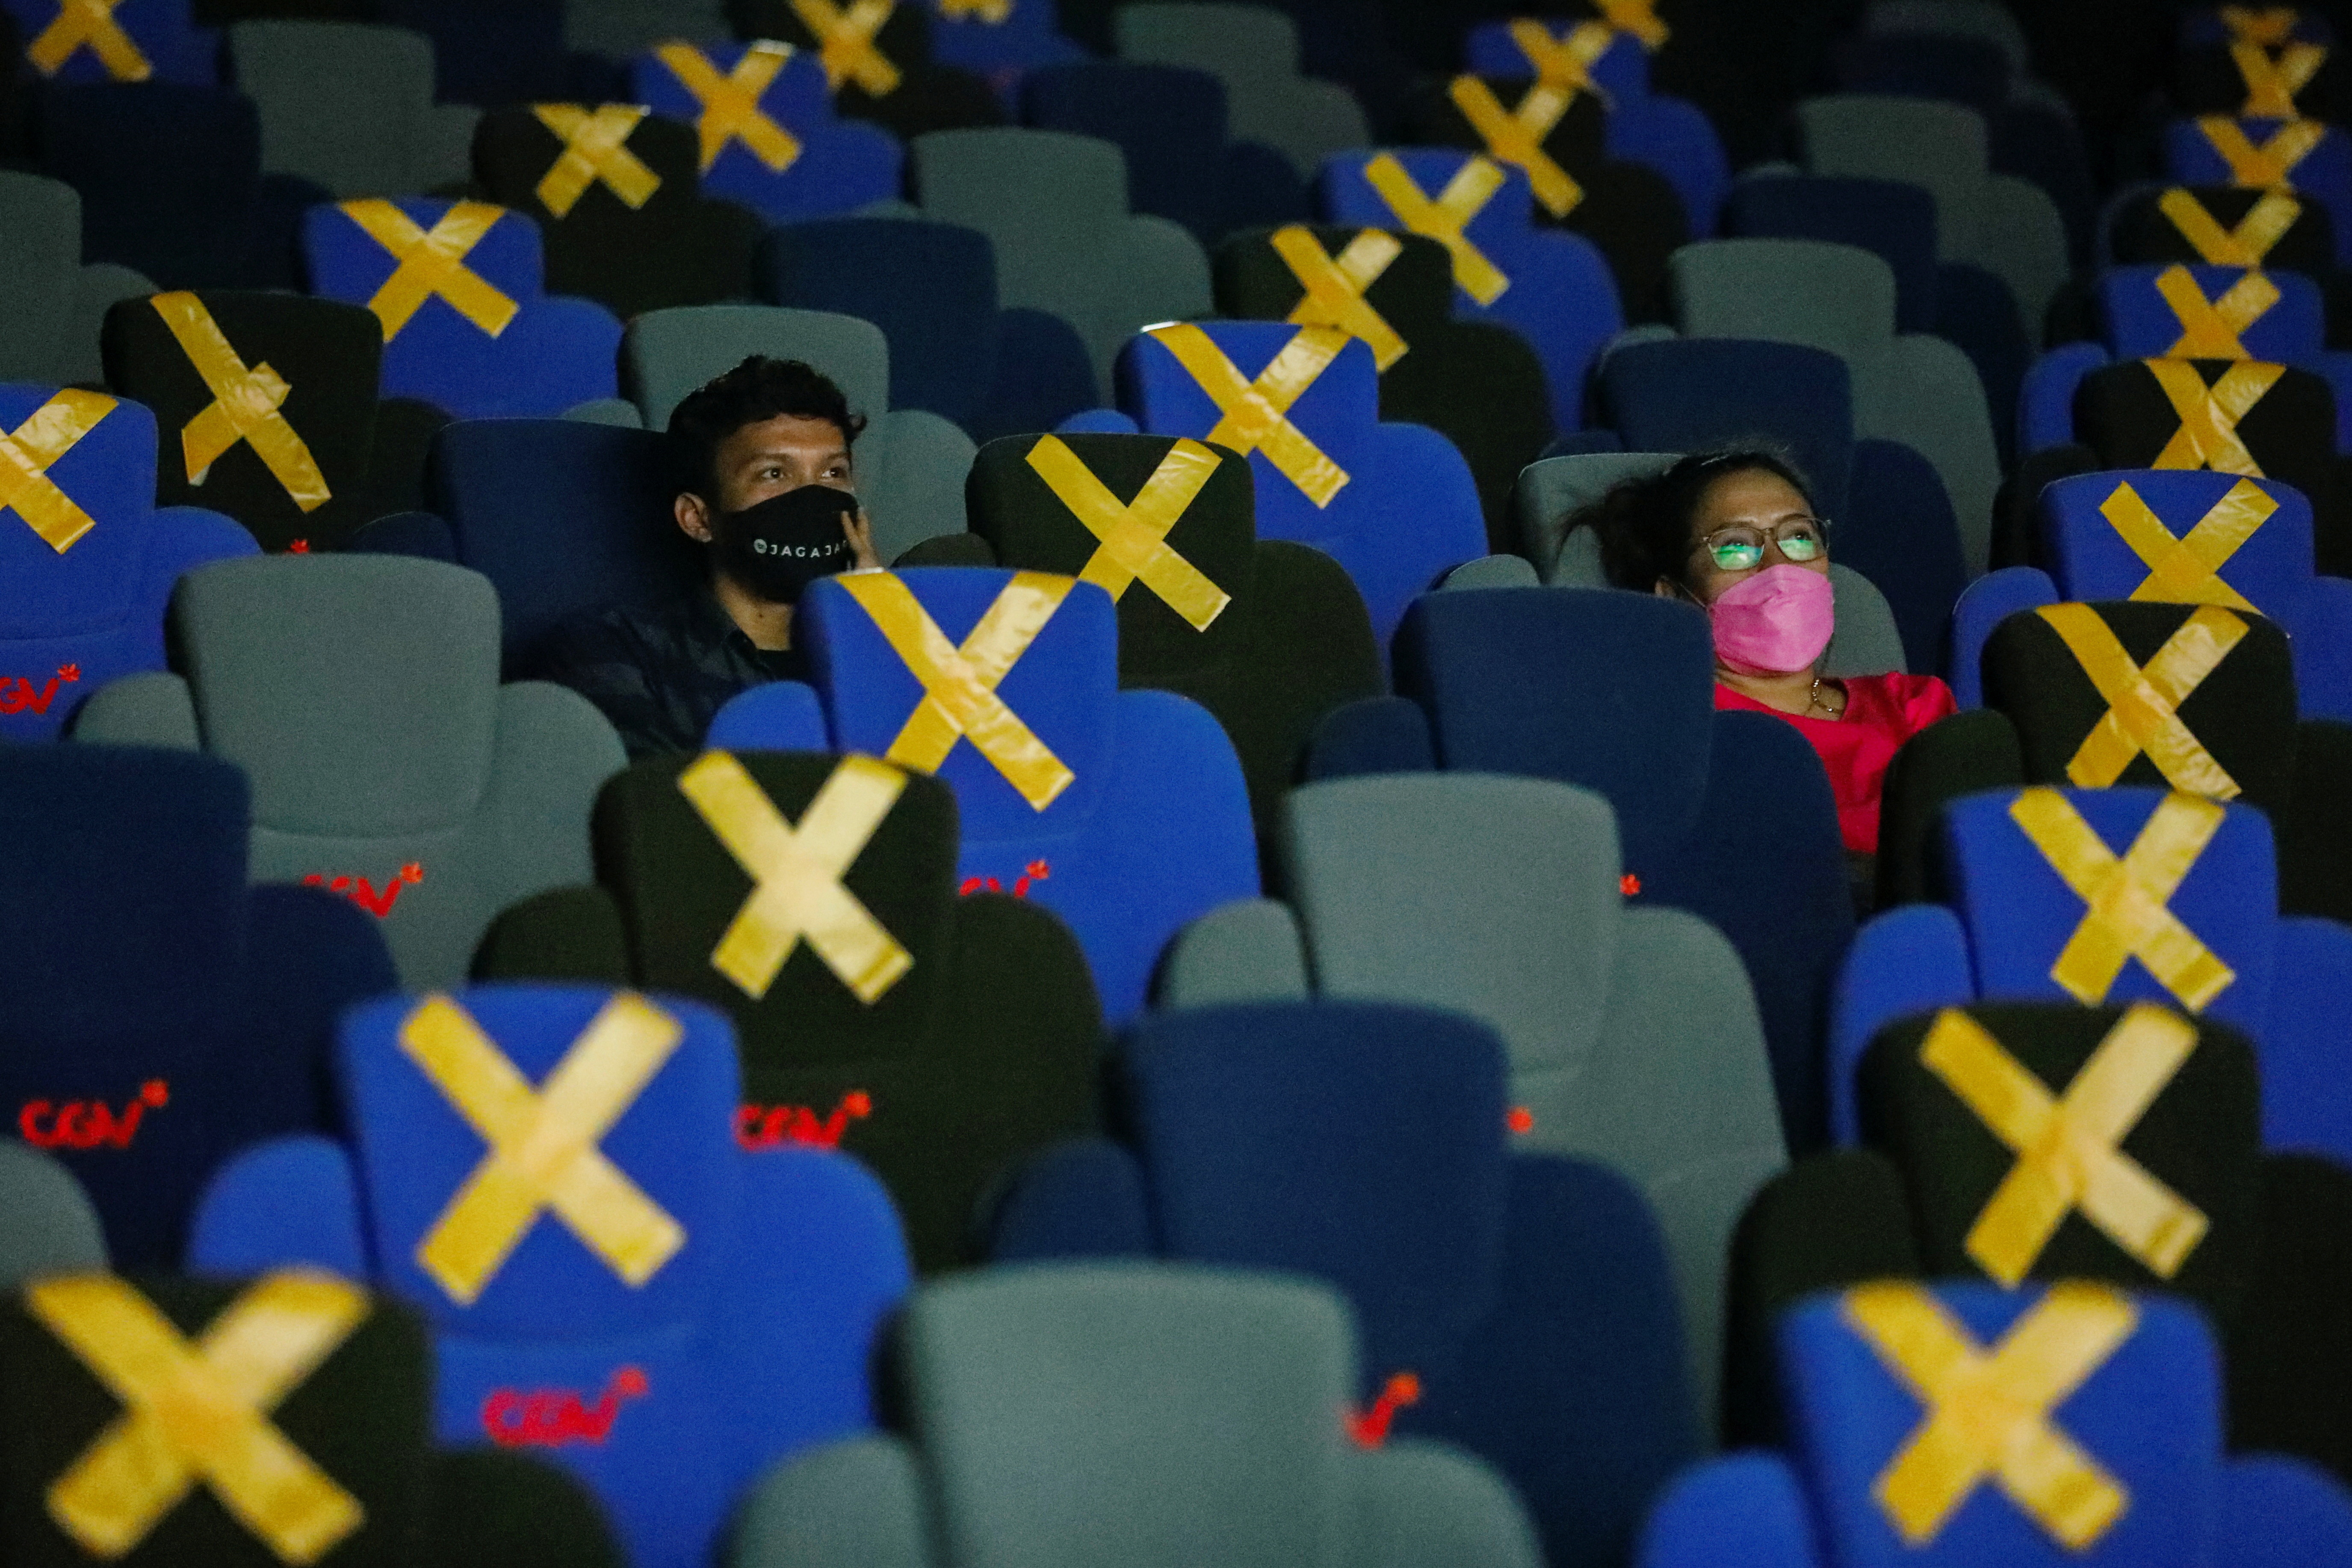 Visitors wearing protective masks watch a movie at a cinema as it is reopened after the ease of restrictions amid the coronavirus disease (COVID-19) pandemic in Jakarta, Indonesia, September 16, 2021. REUTERS/Willy Kurniawan - RC2VQP9LHOM0